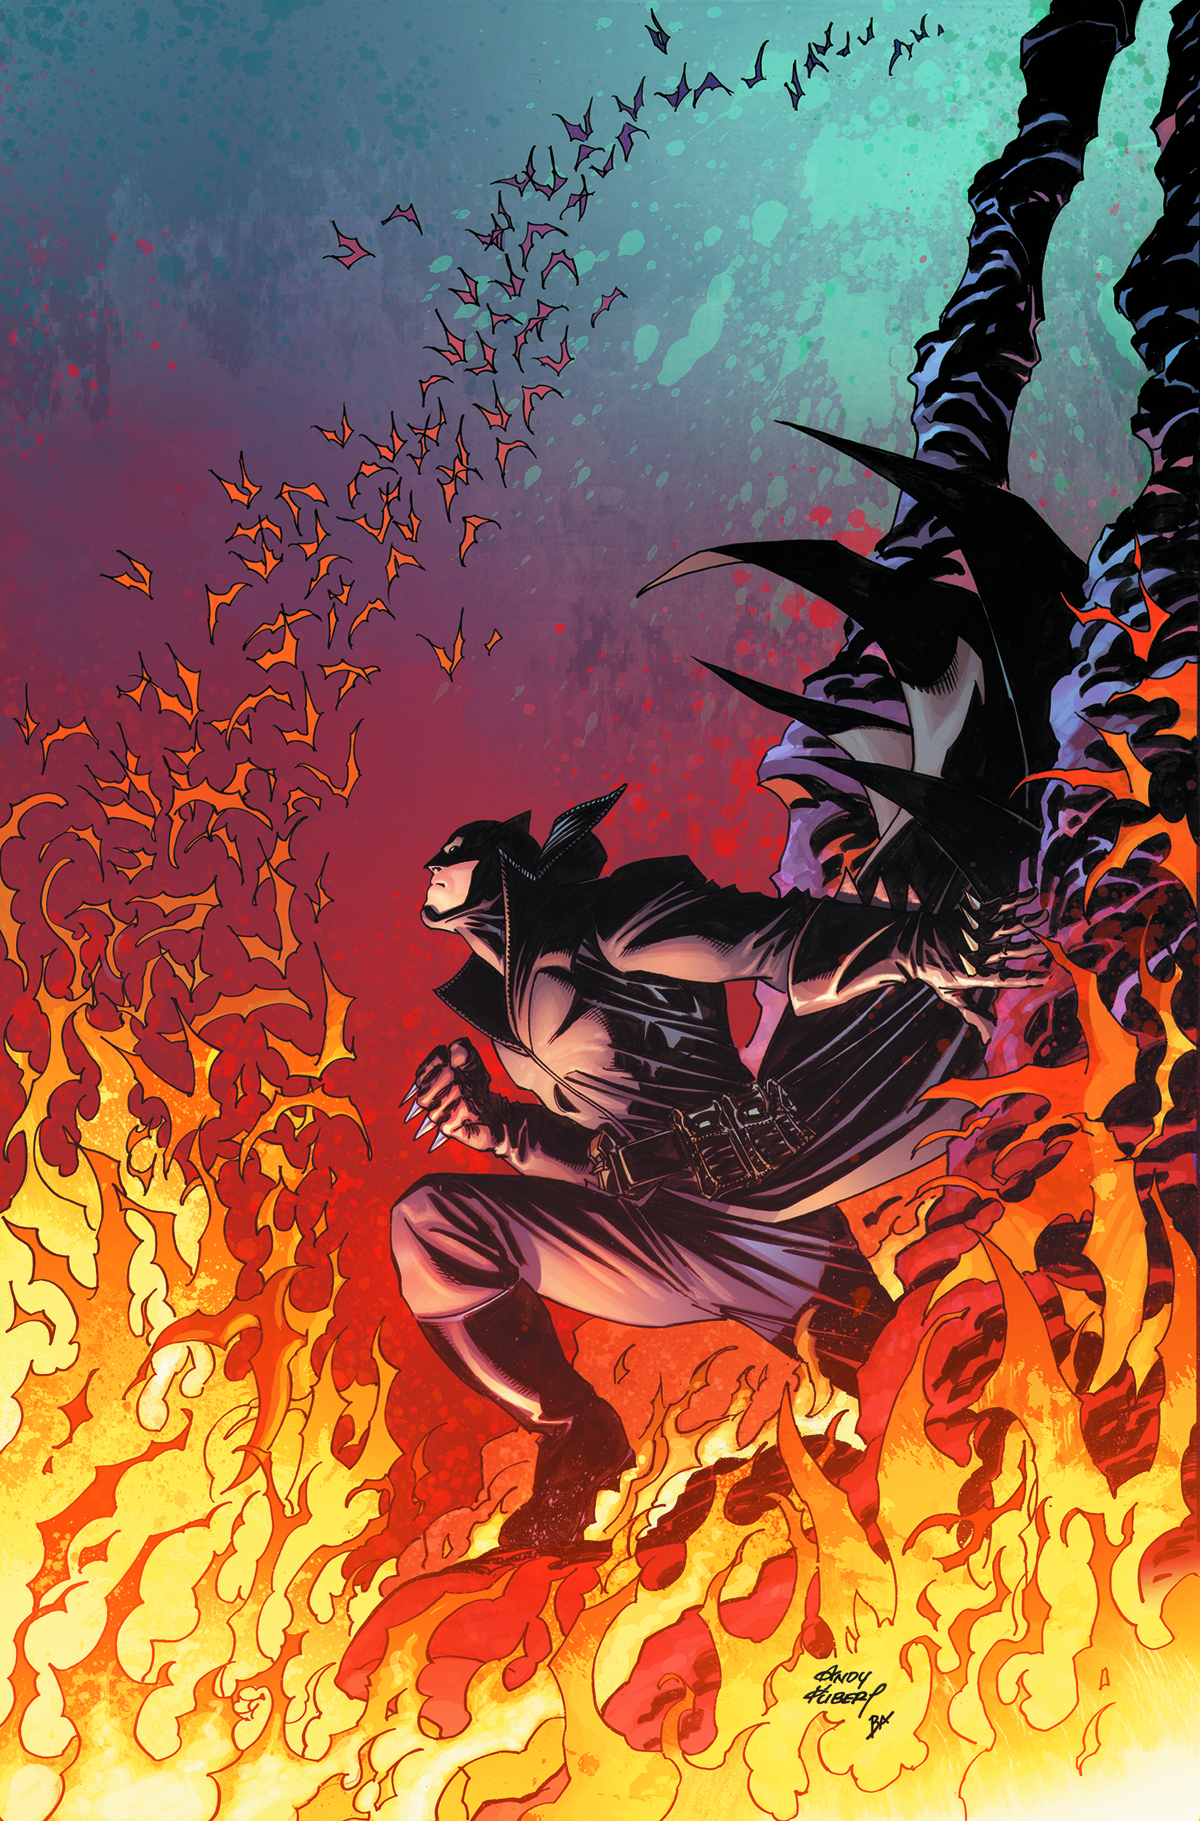 DAMIAN SON OF BATMAN #4